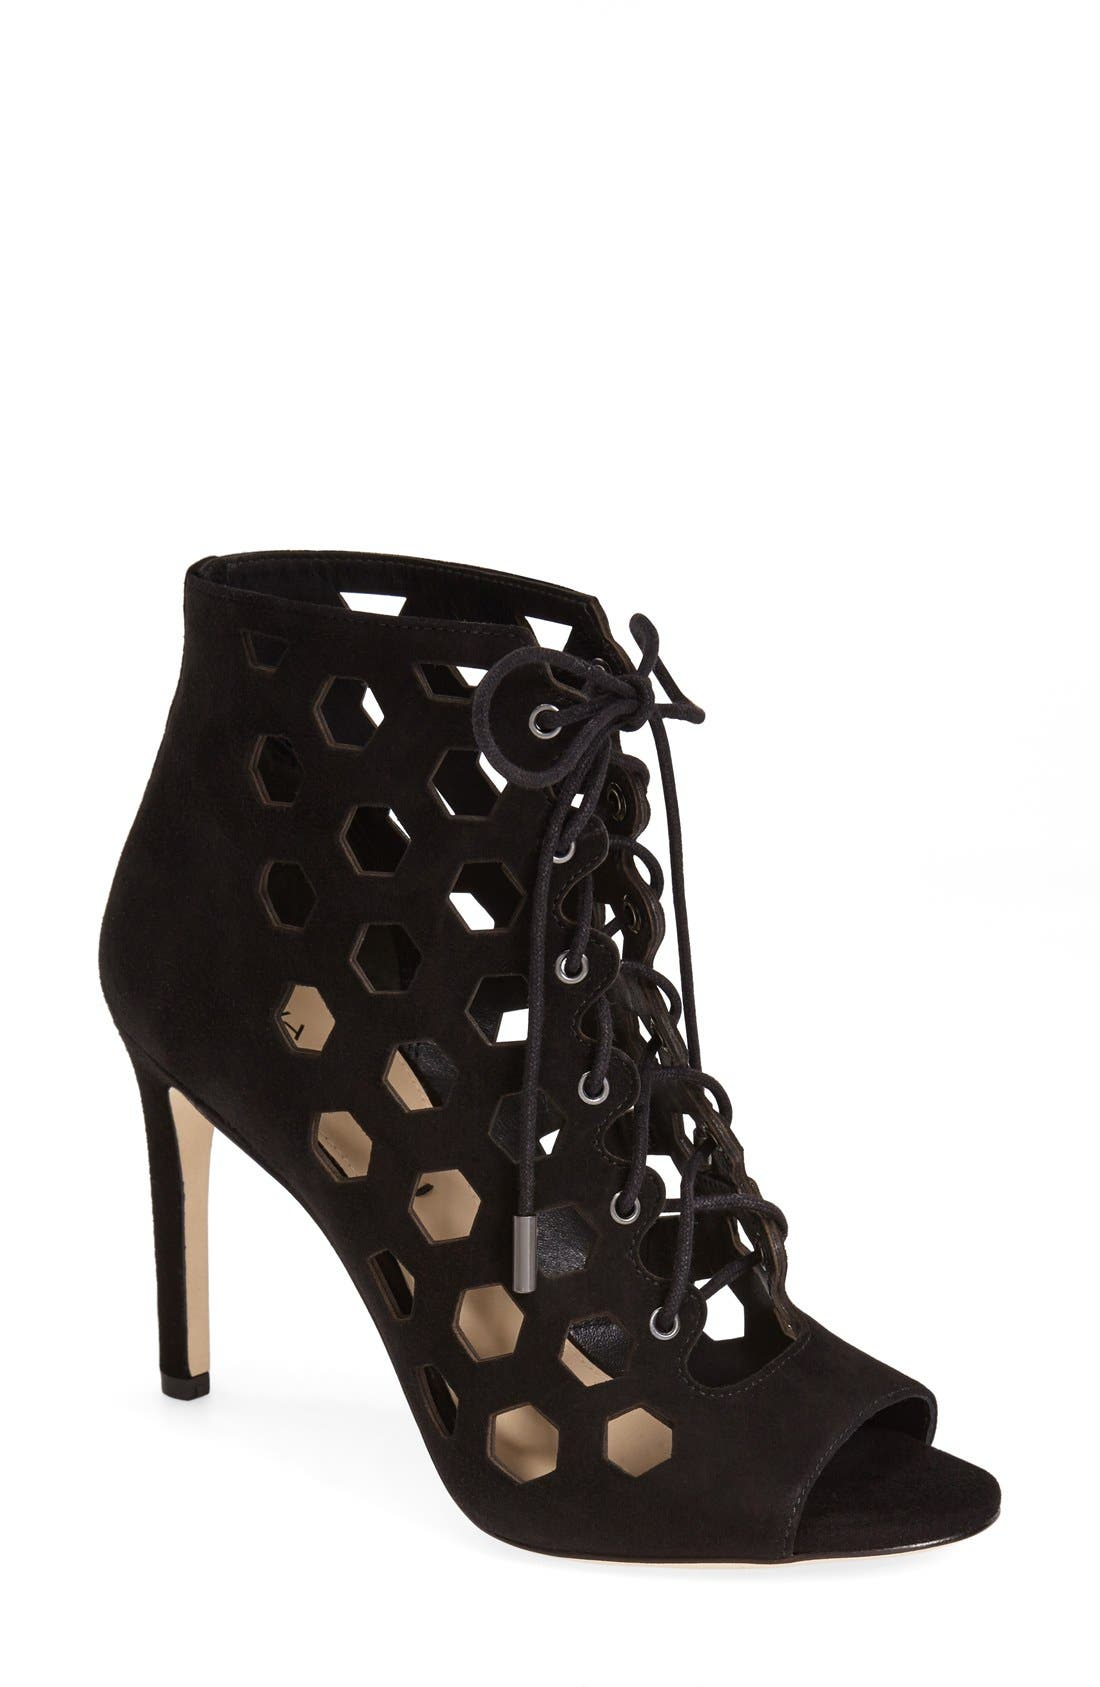 Alternate Image 1 Selected - Via Spiga 'Elouise' Lace-Up Bootie (Women)